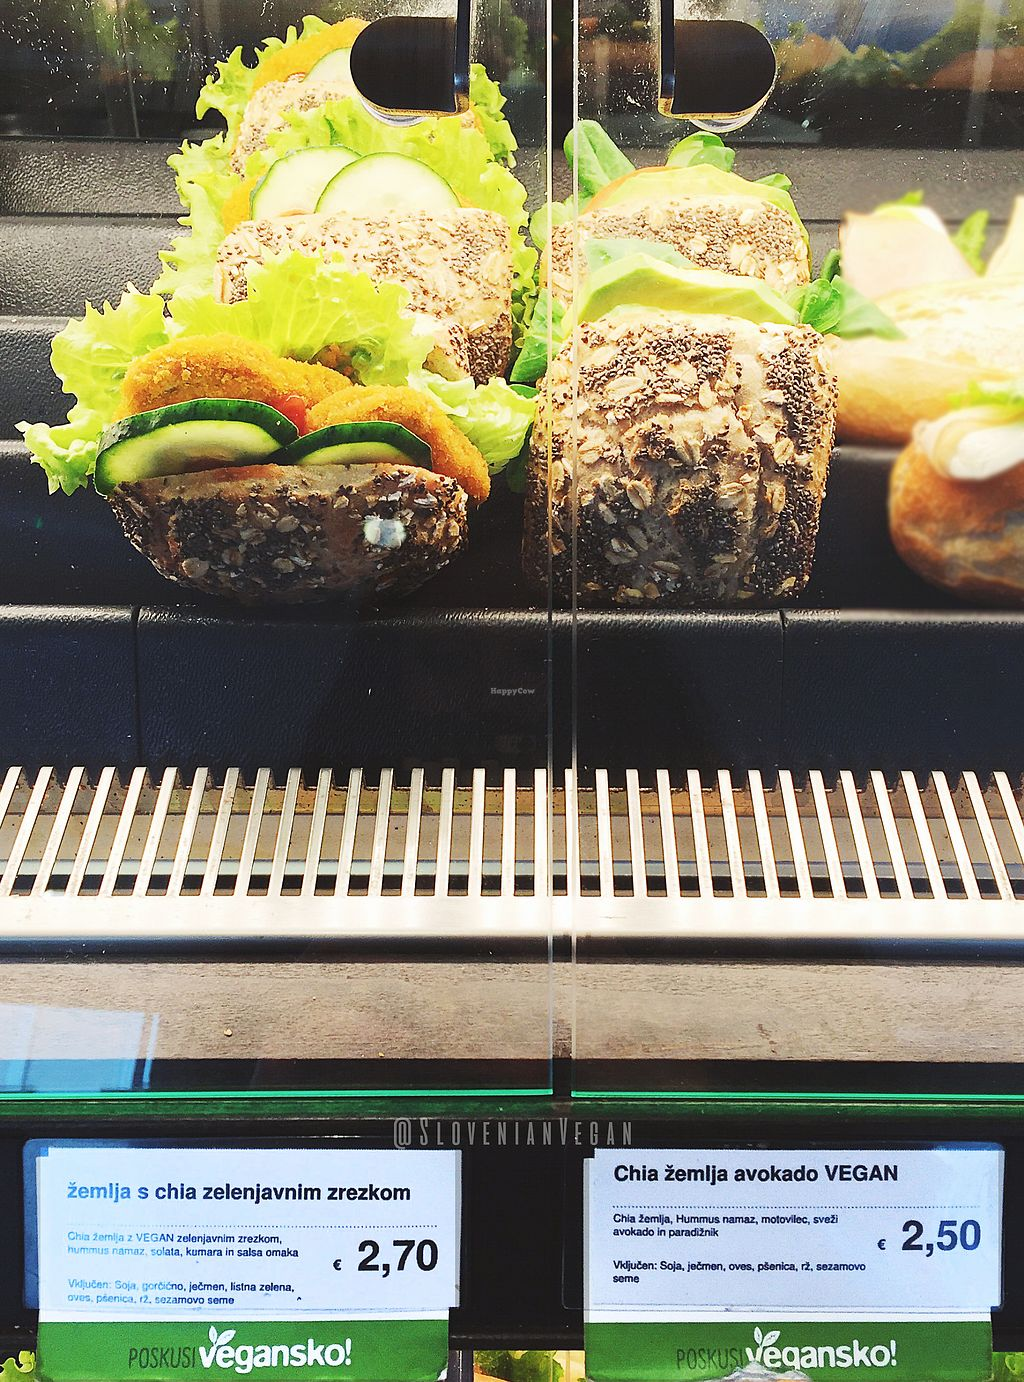 """Photo of BackWerk  by <a href=""""/members/profile/slovenianvegan"""">slovenianvegan</a> <br/>Chia sandwich with vegetable steak or avocado  Photo by: Slovenian Vegan page on Facebook <br/> February 2, 2018  - <a href='/contact/abuse/image/77858/353999'>Report</a>"""